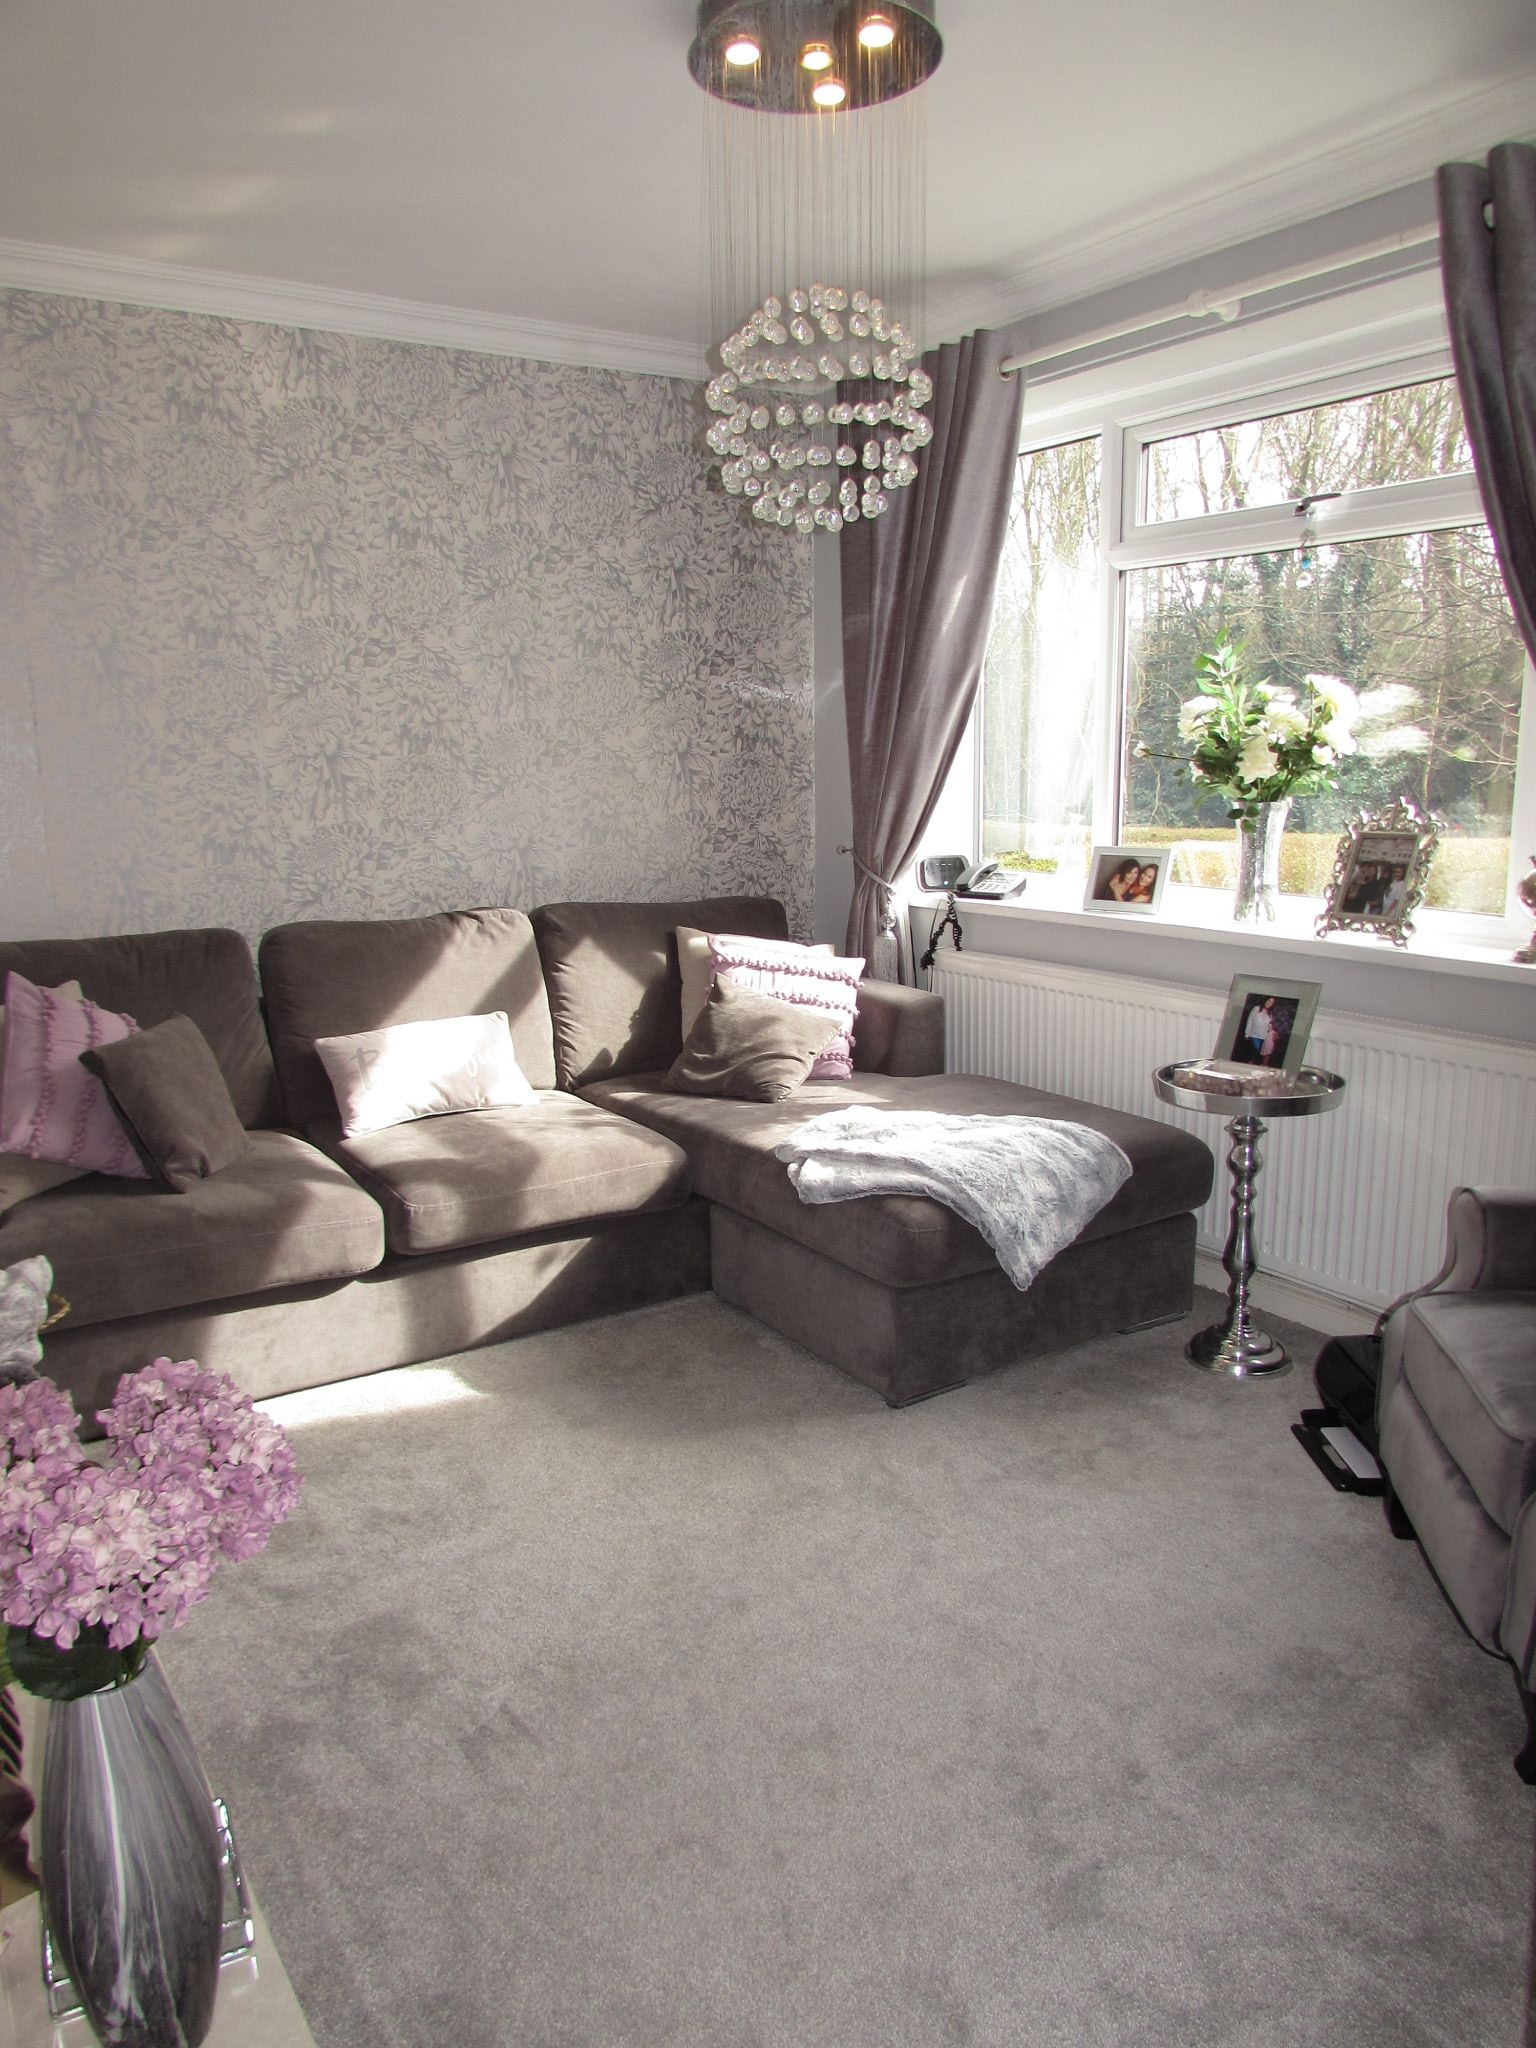 3 Bedroom Semi-detached House For Sale - Front Lounge